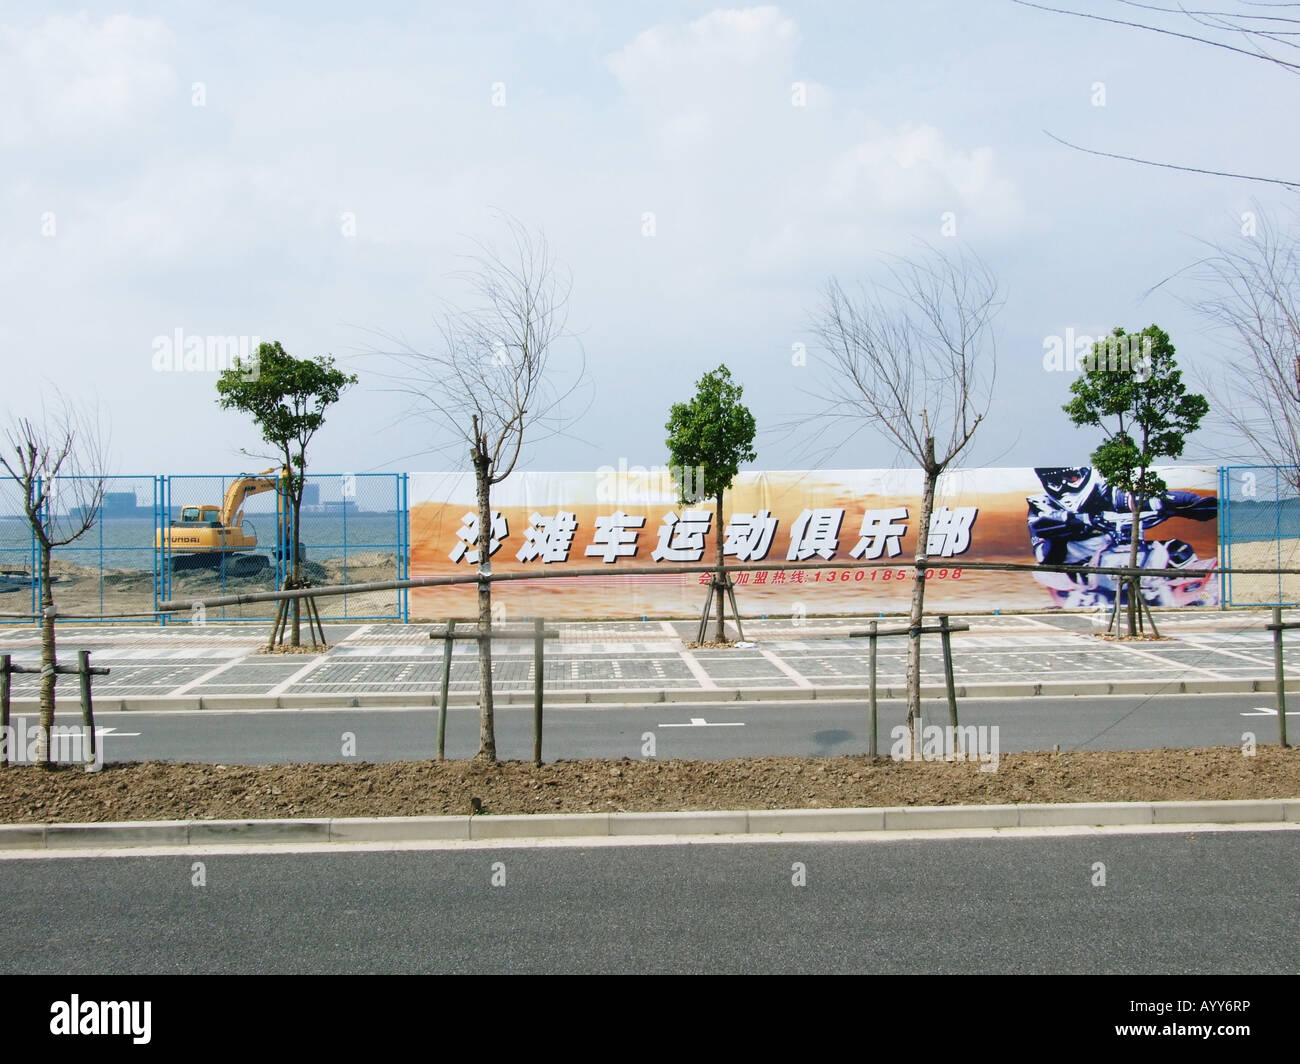 A poster hides a construction site on the shore of Water Drop Lake Lingang New City near Shanghai China Stock Photo